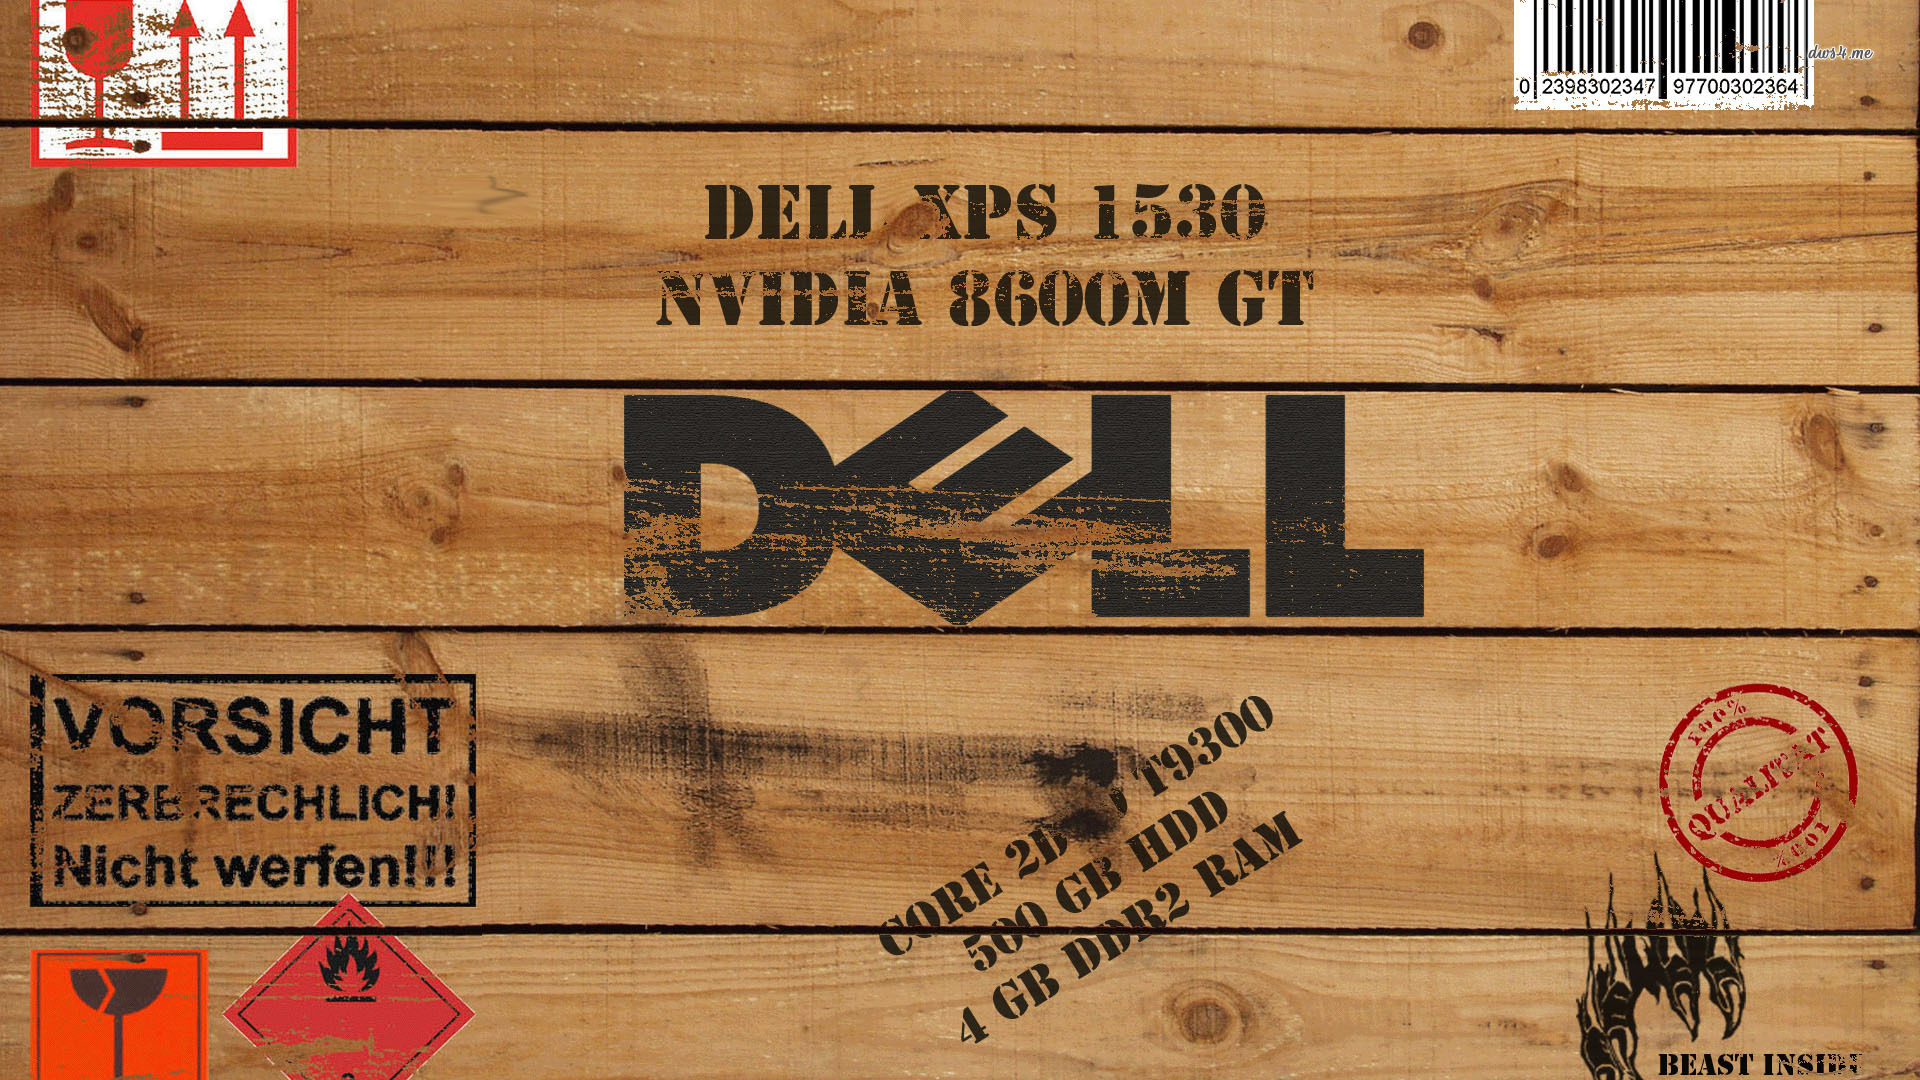 Dell Full HD Papel De Parede And Background Image